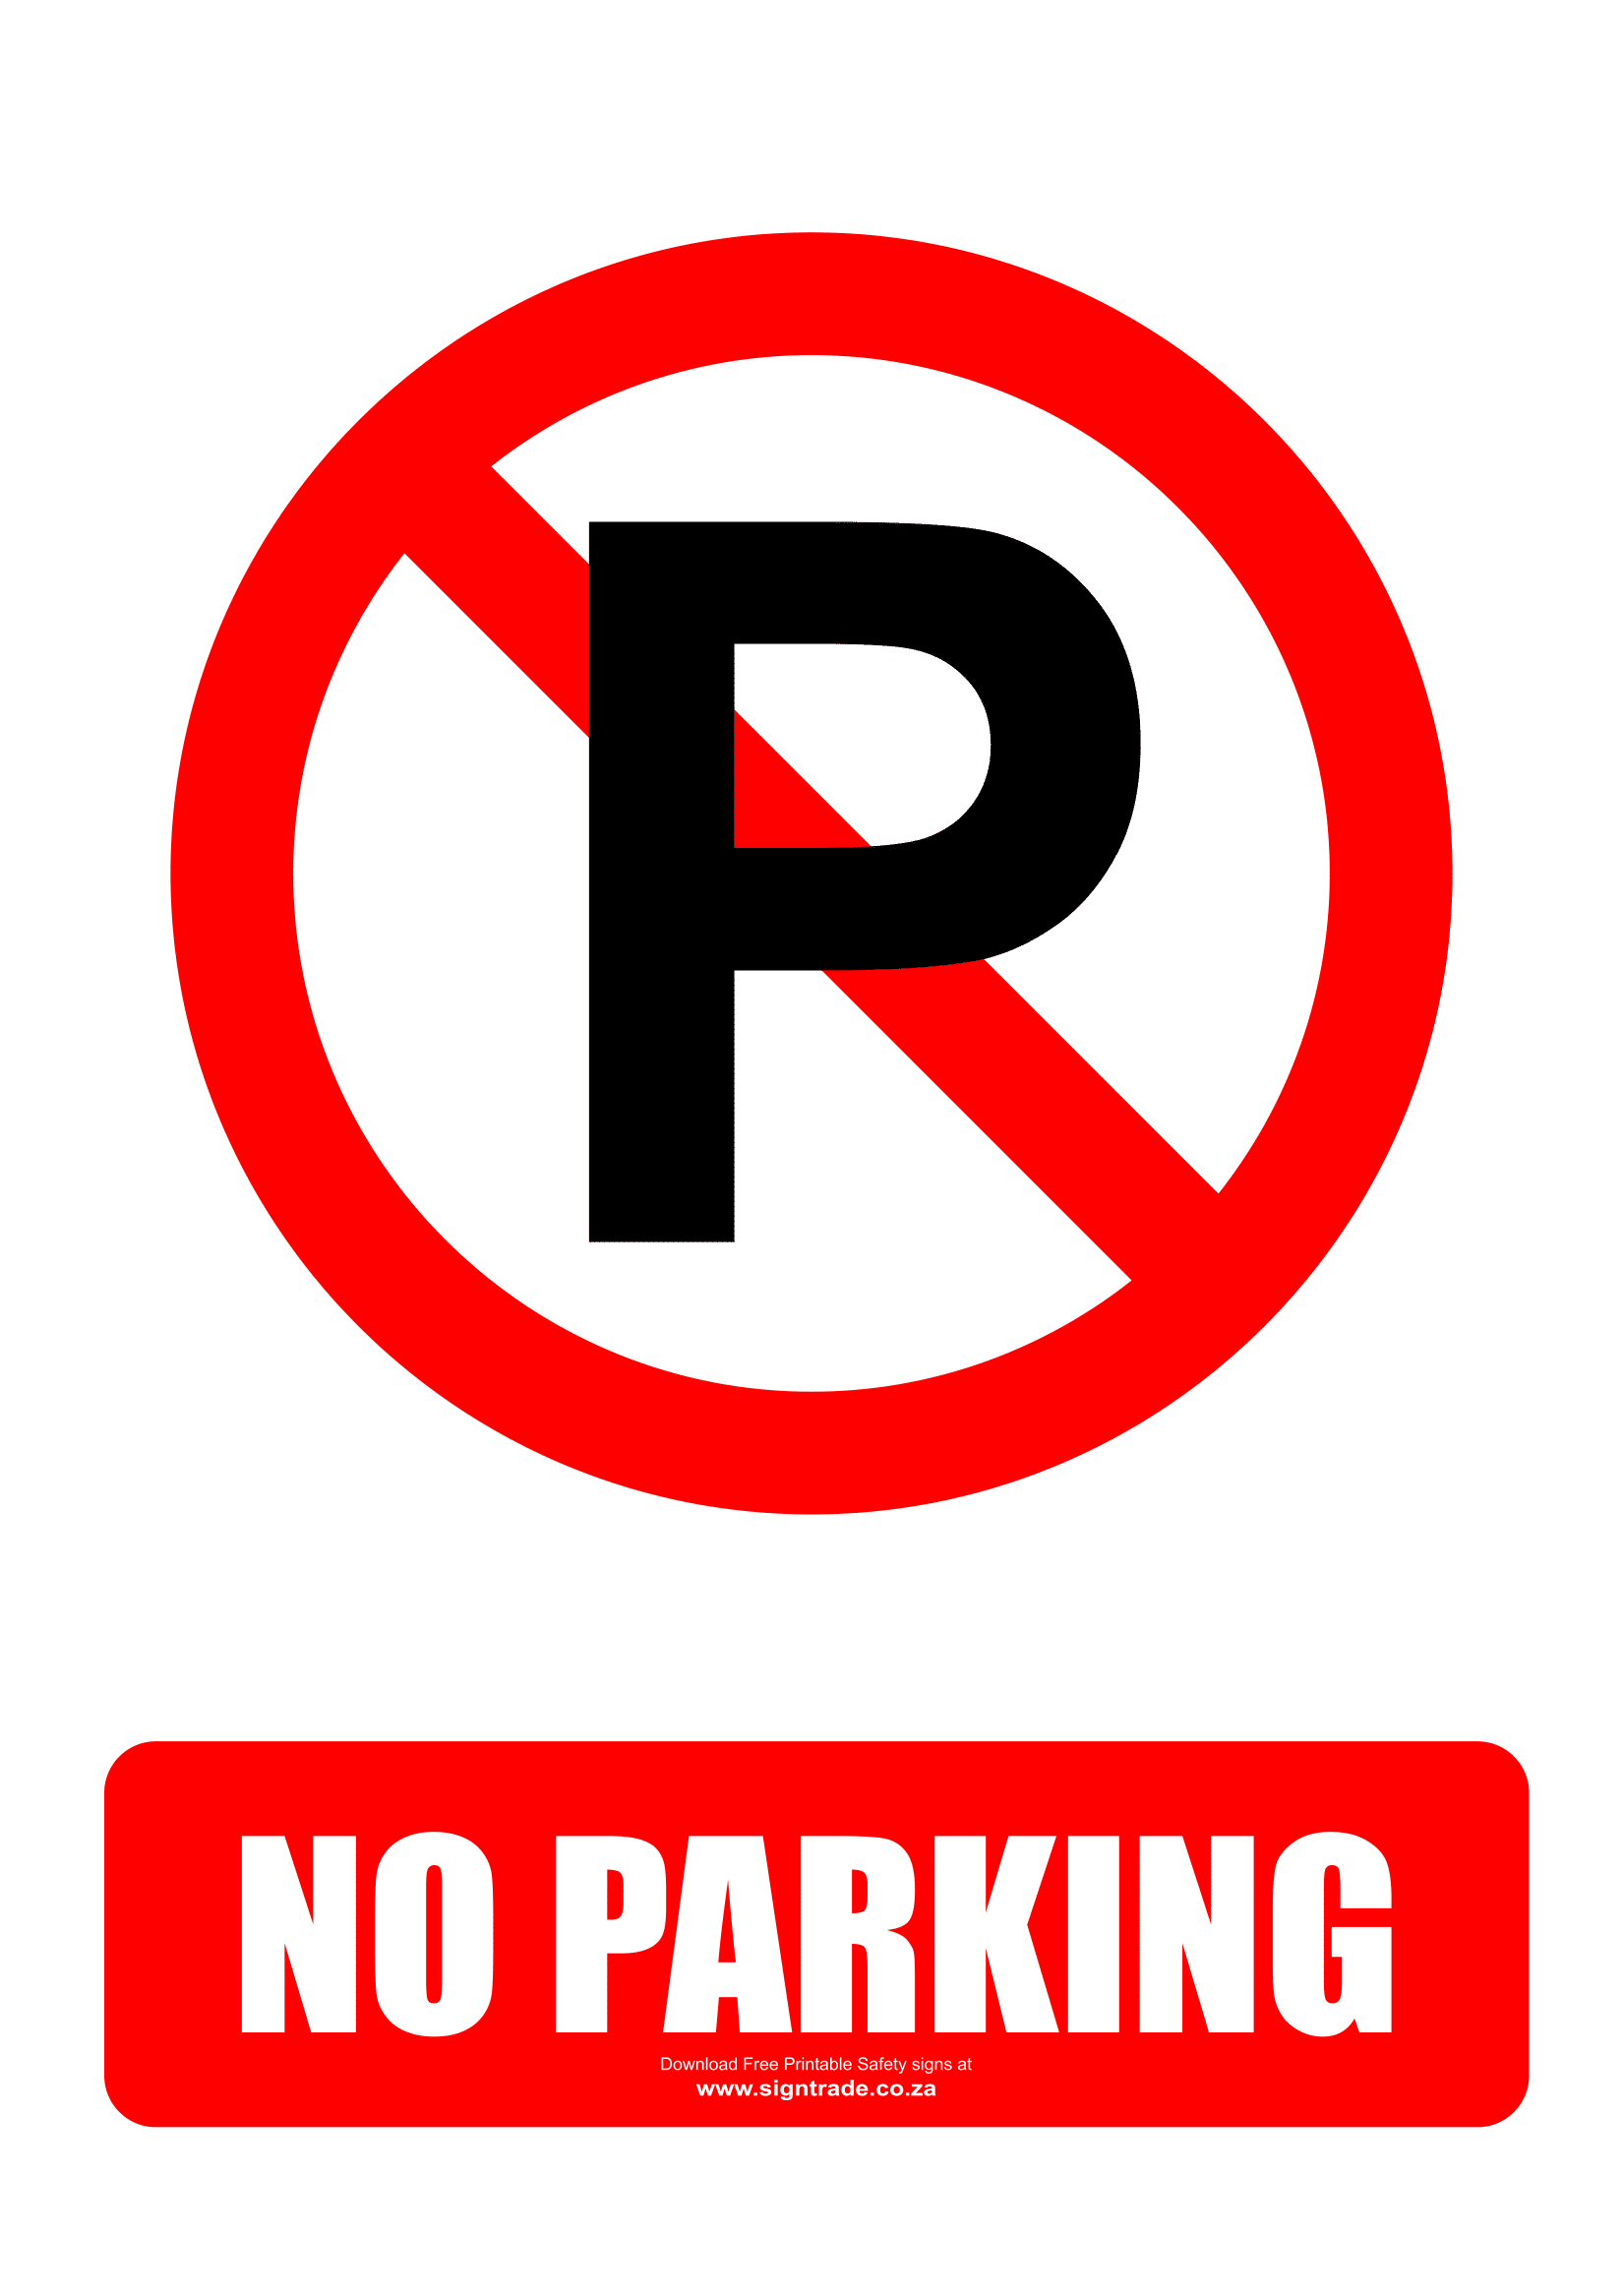 graphic about Free Printable Safety Signs titled No Parking Symptoms Poster Template